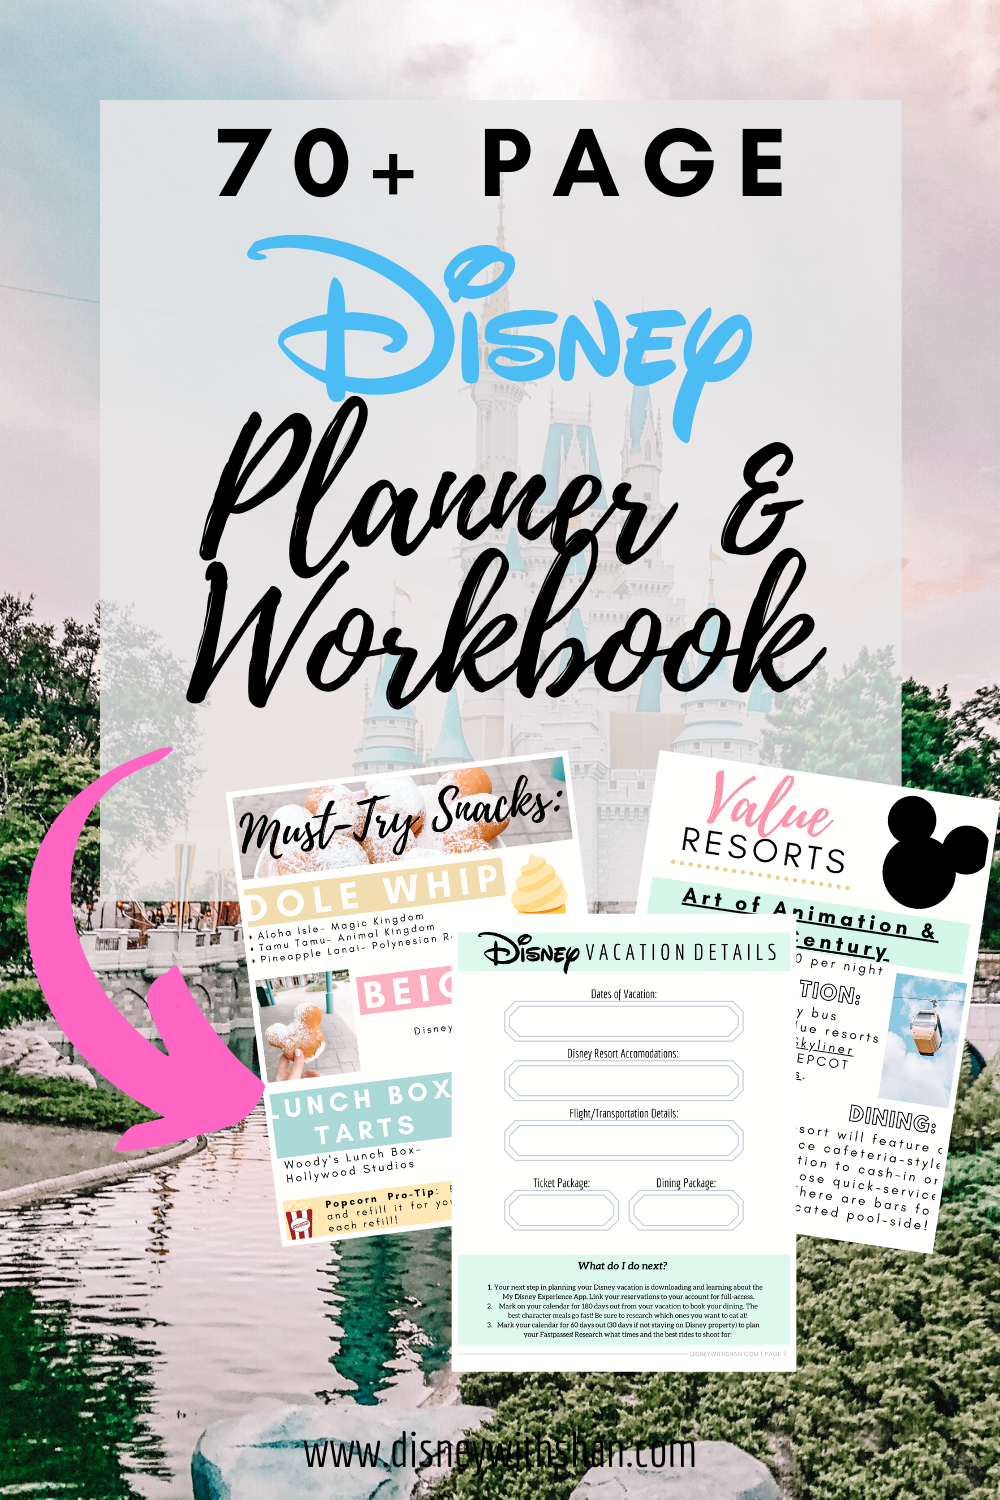 Walt Disney World Vacation Planner and Guide